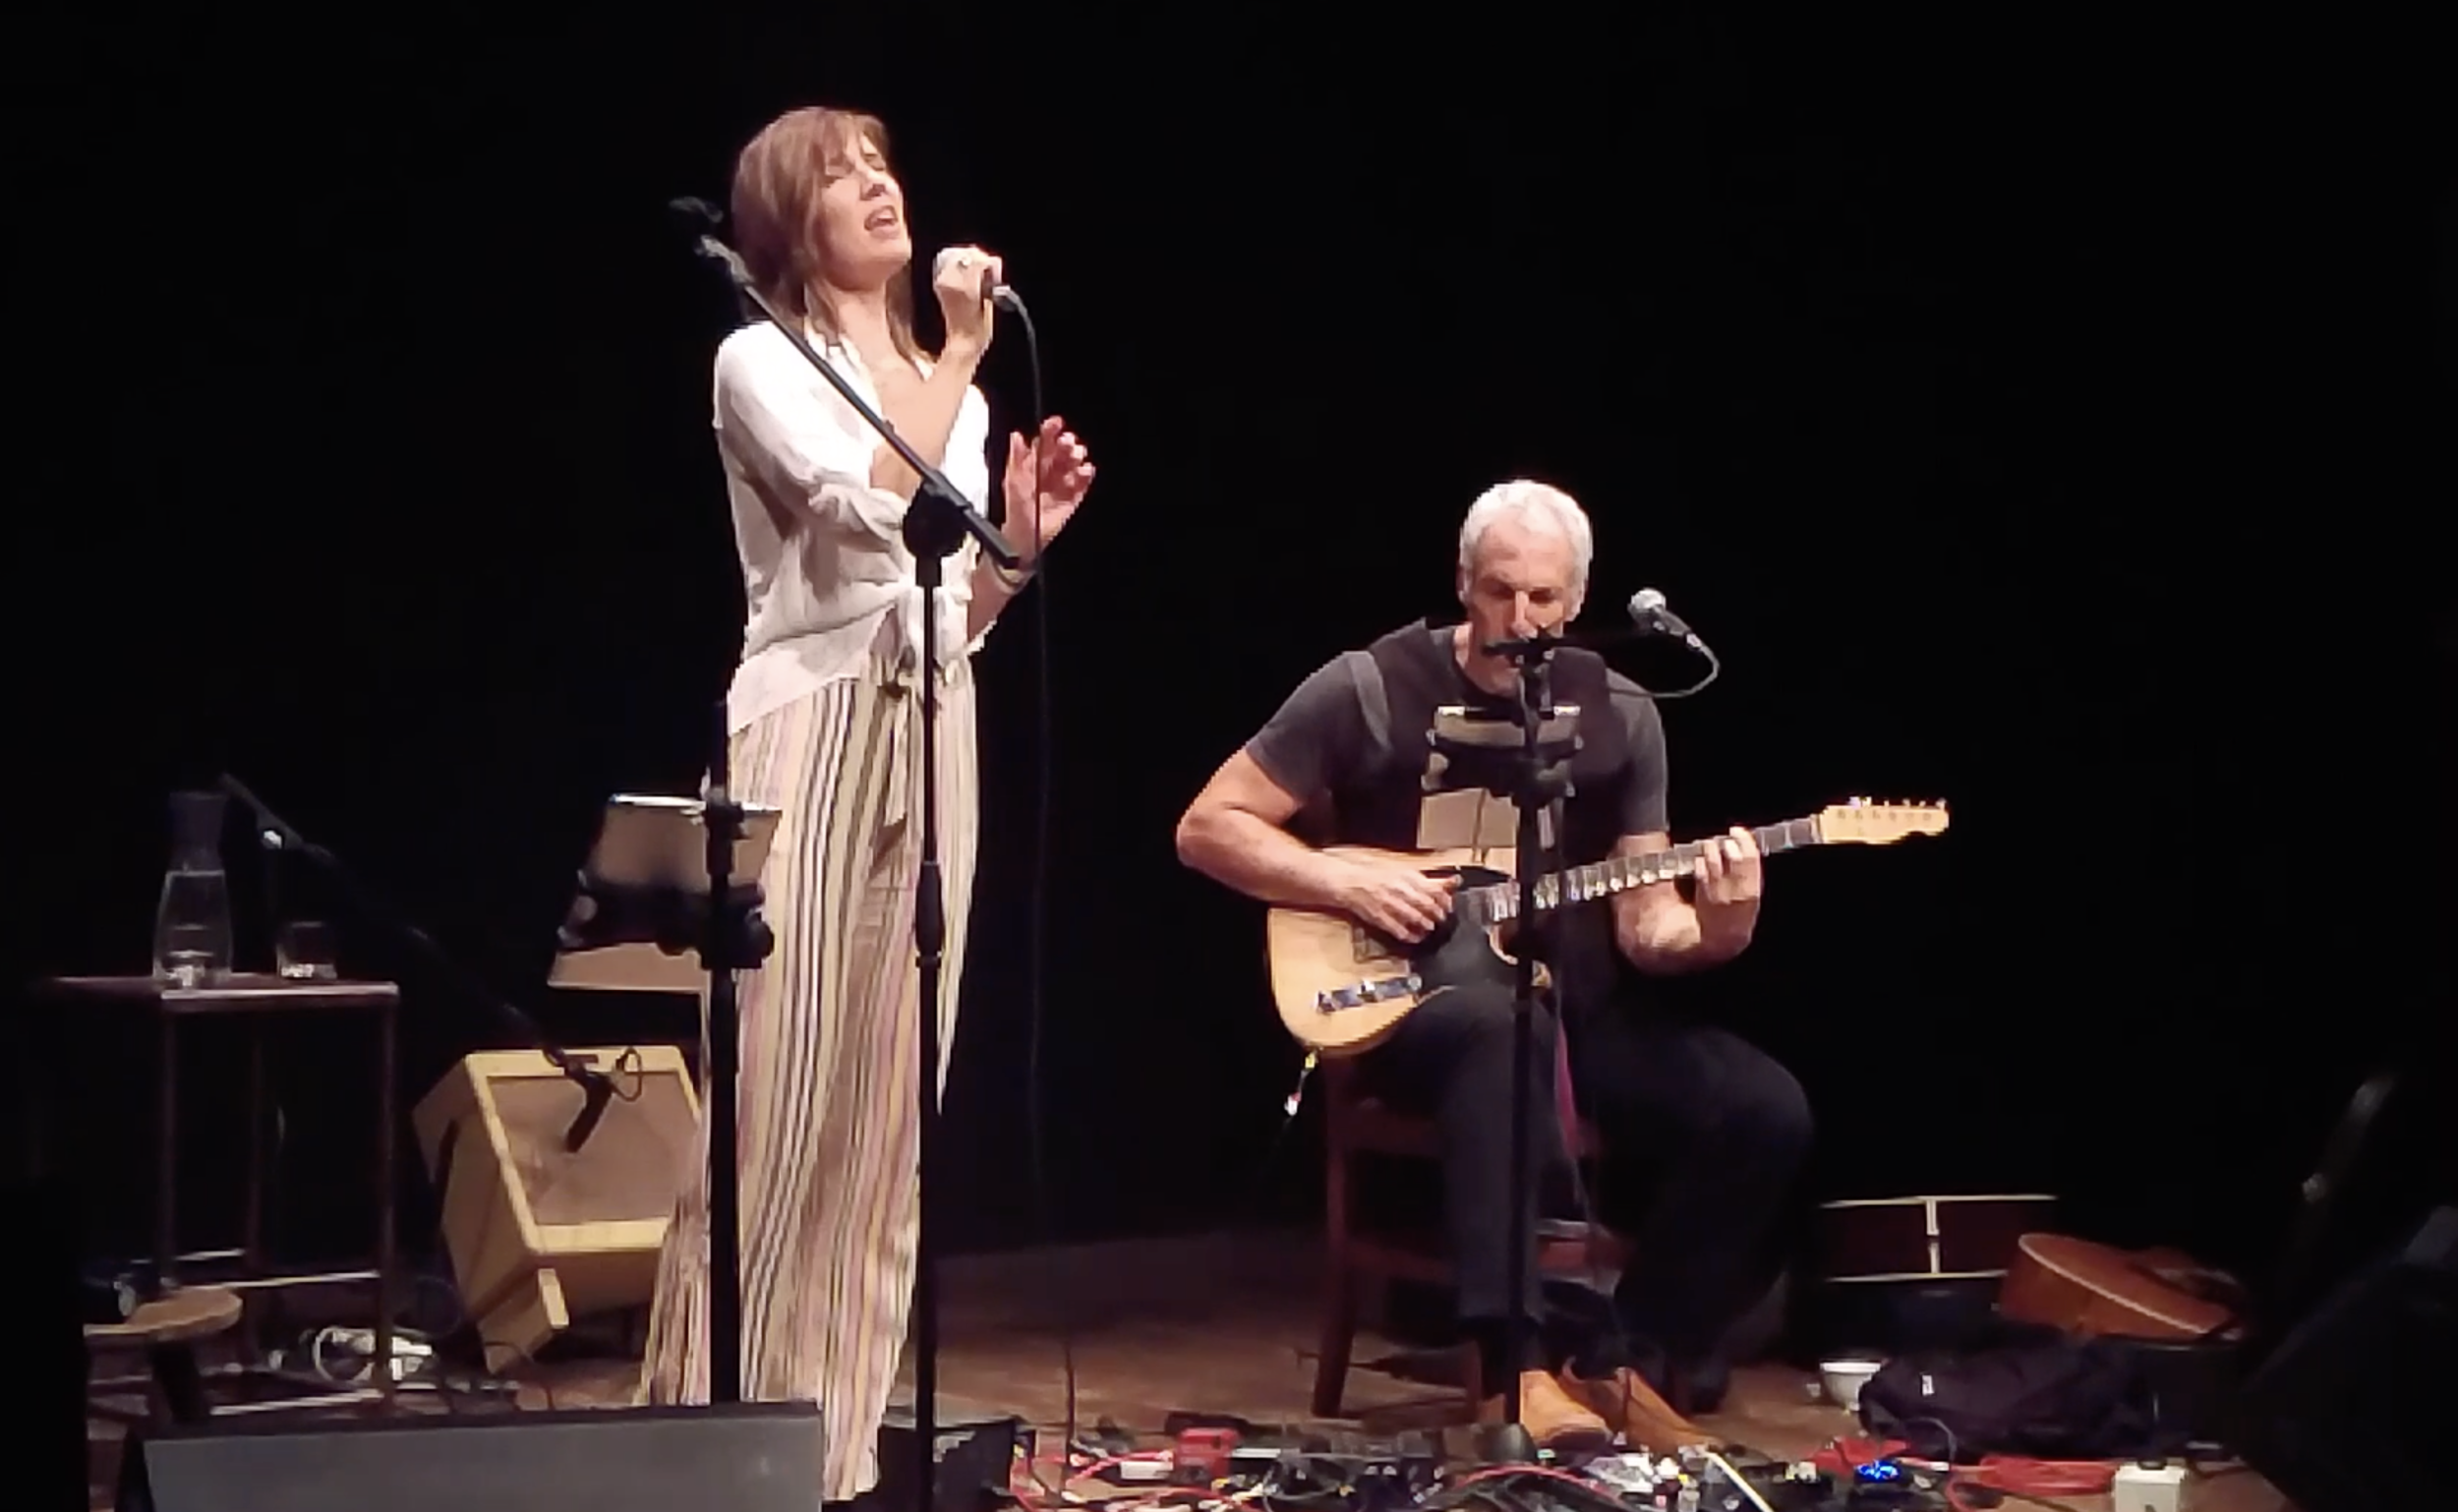 Inger & Jeff performing at Teatro Del Sale, Florence, Italy 2018. Capture from video by Francesco Lucarelli